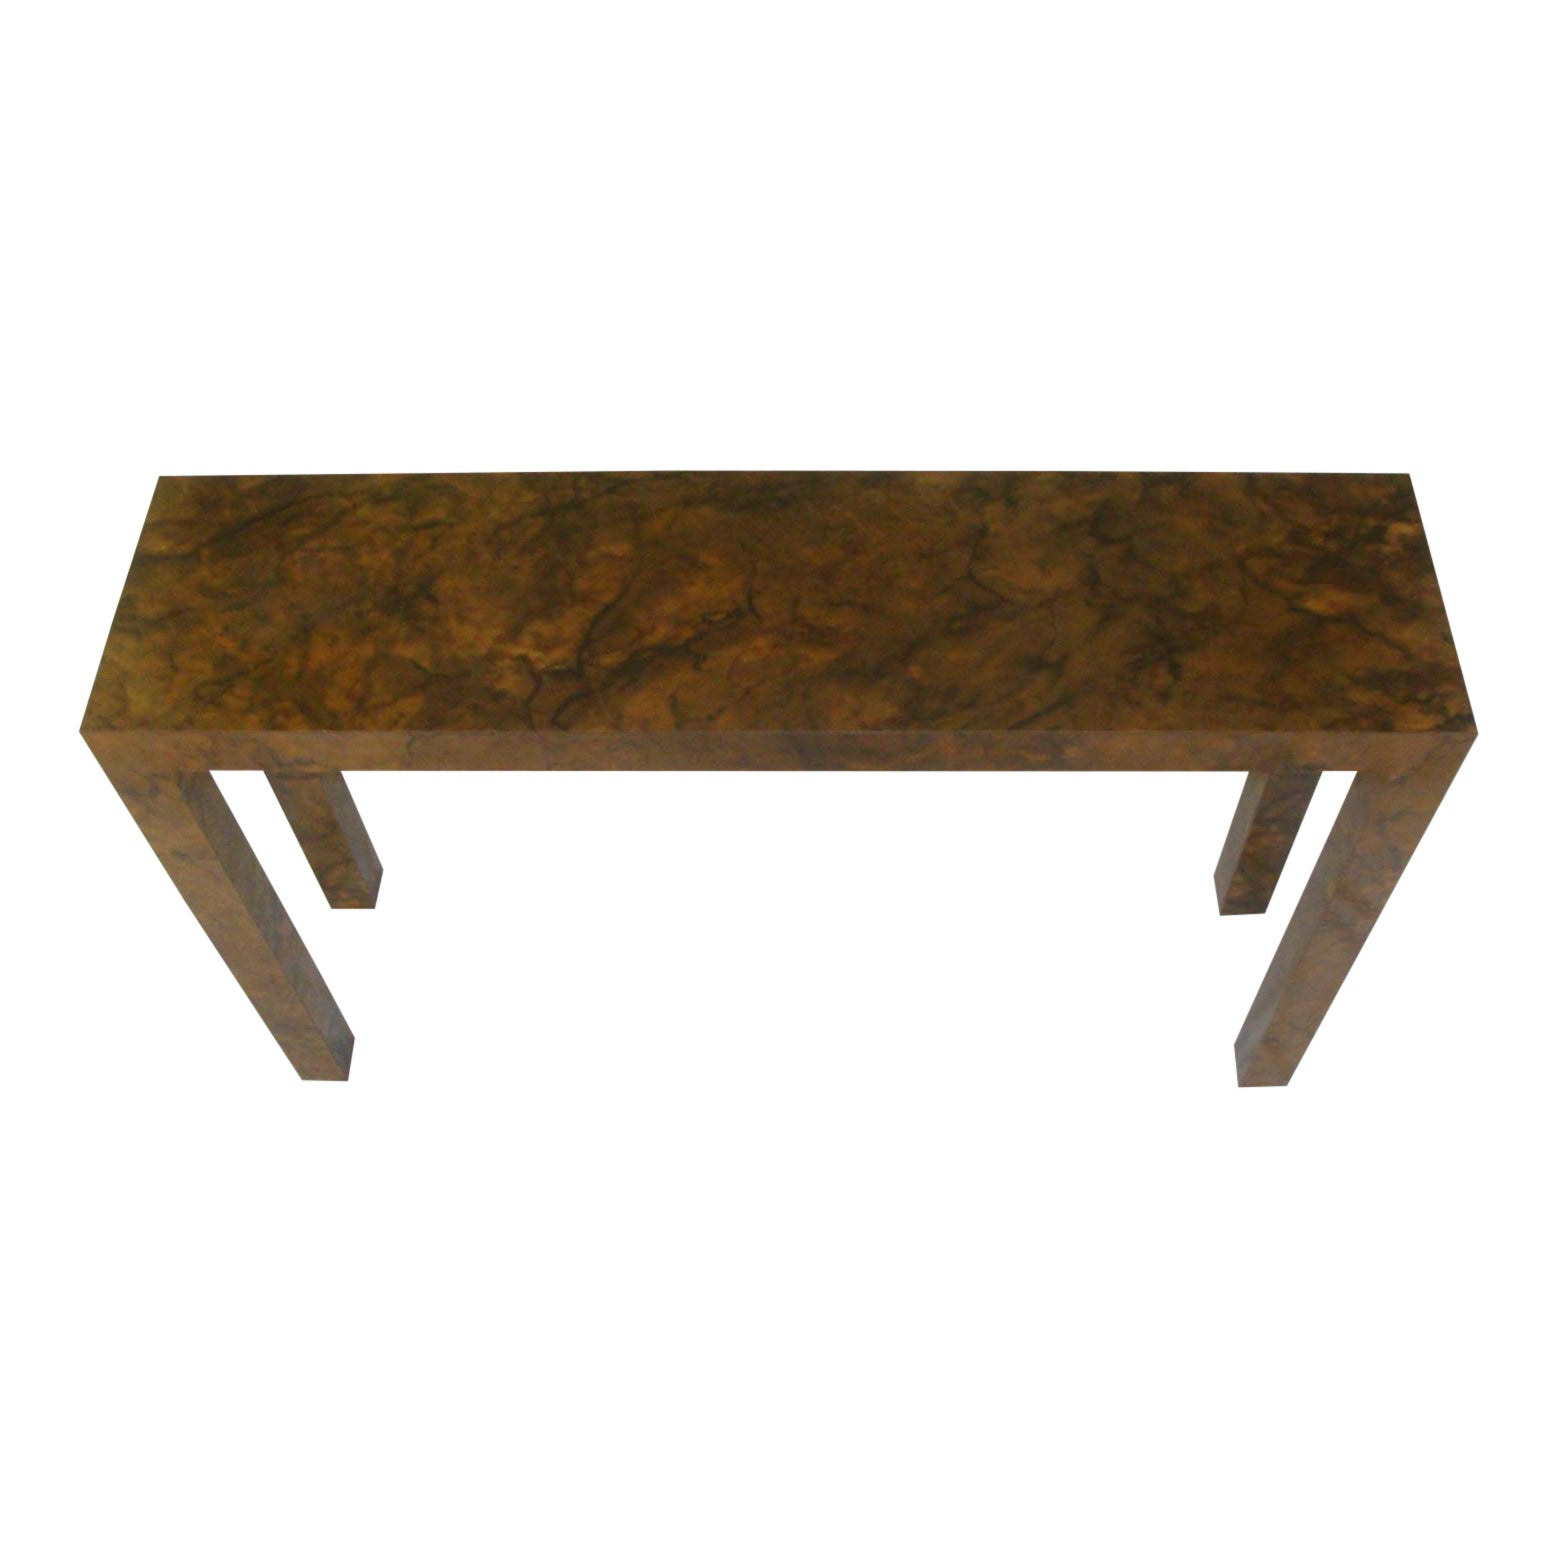 White Resin Folding Table, Narrow Parsons Console Table In Tortoiseshell Chairish